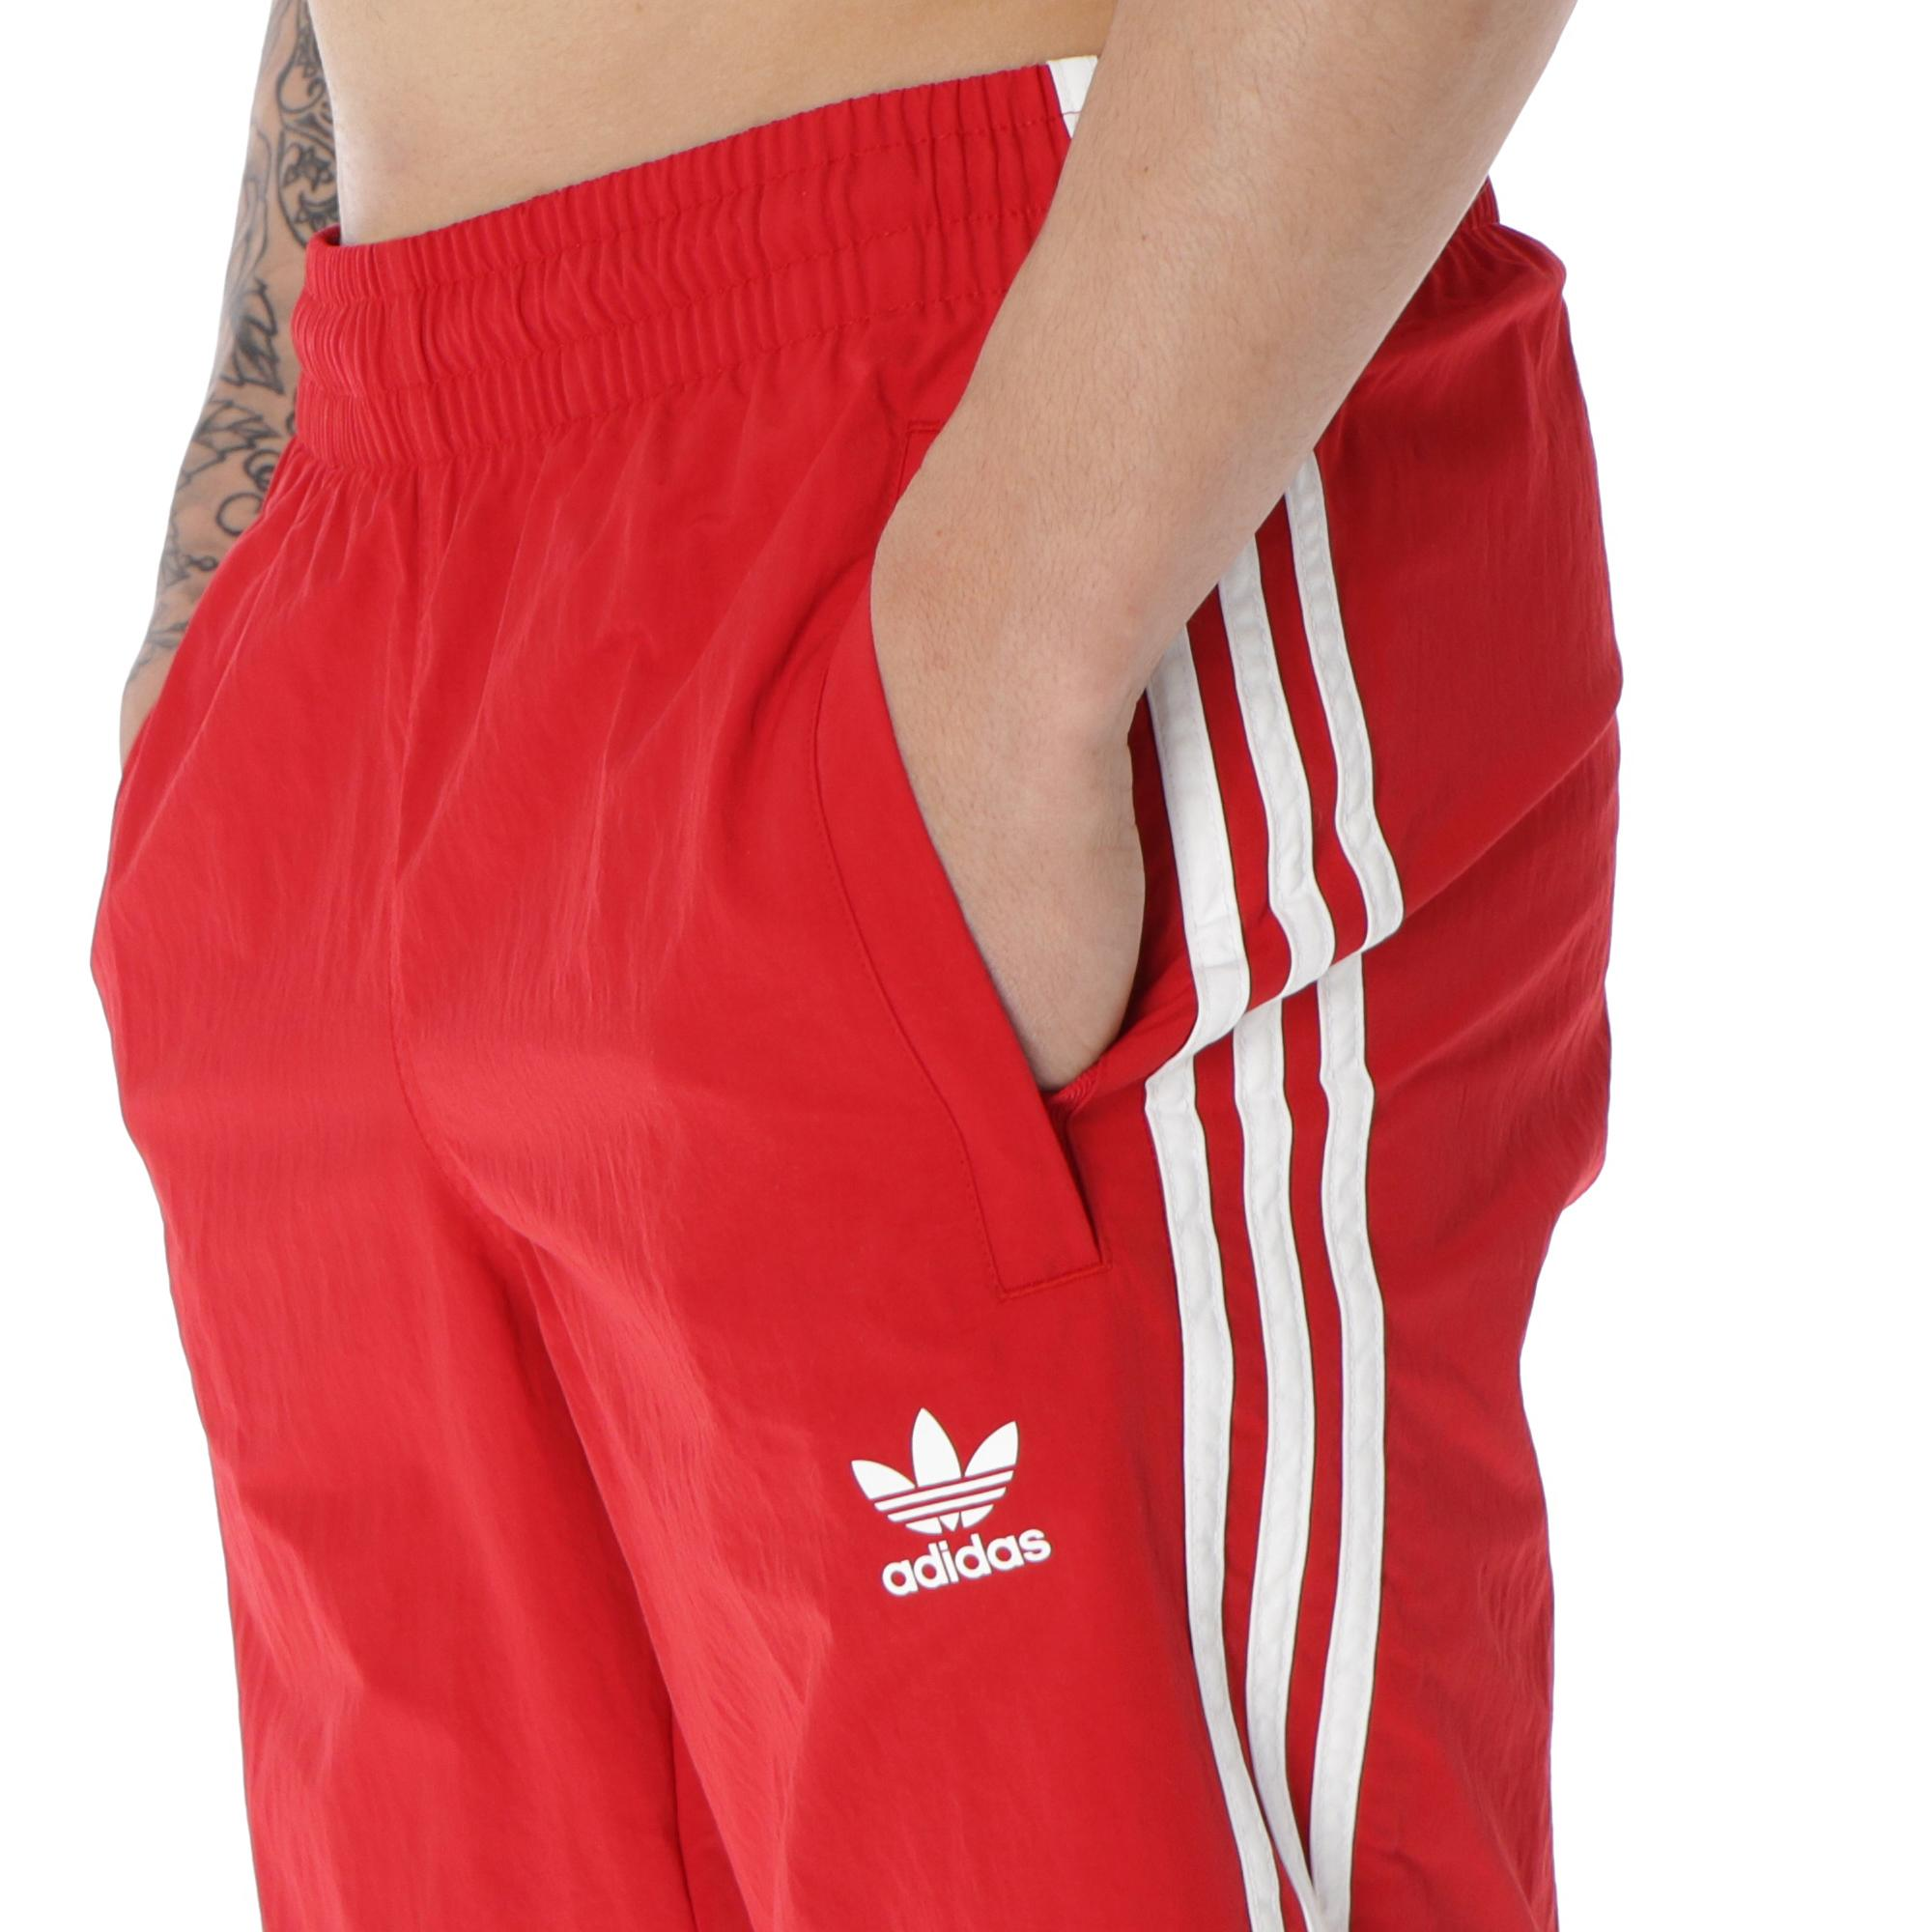 Adidas Stripes Swimming Short Power red